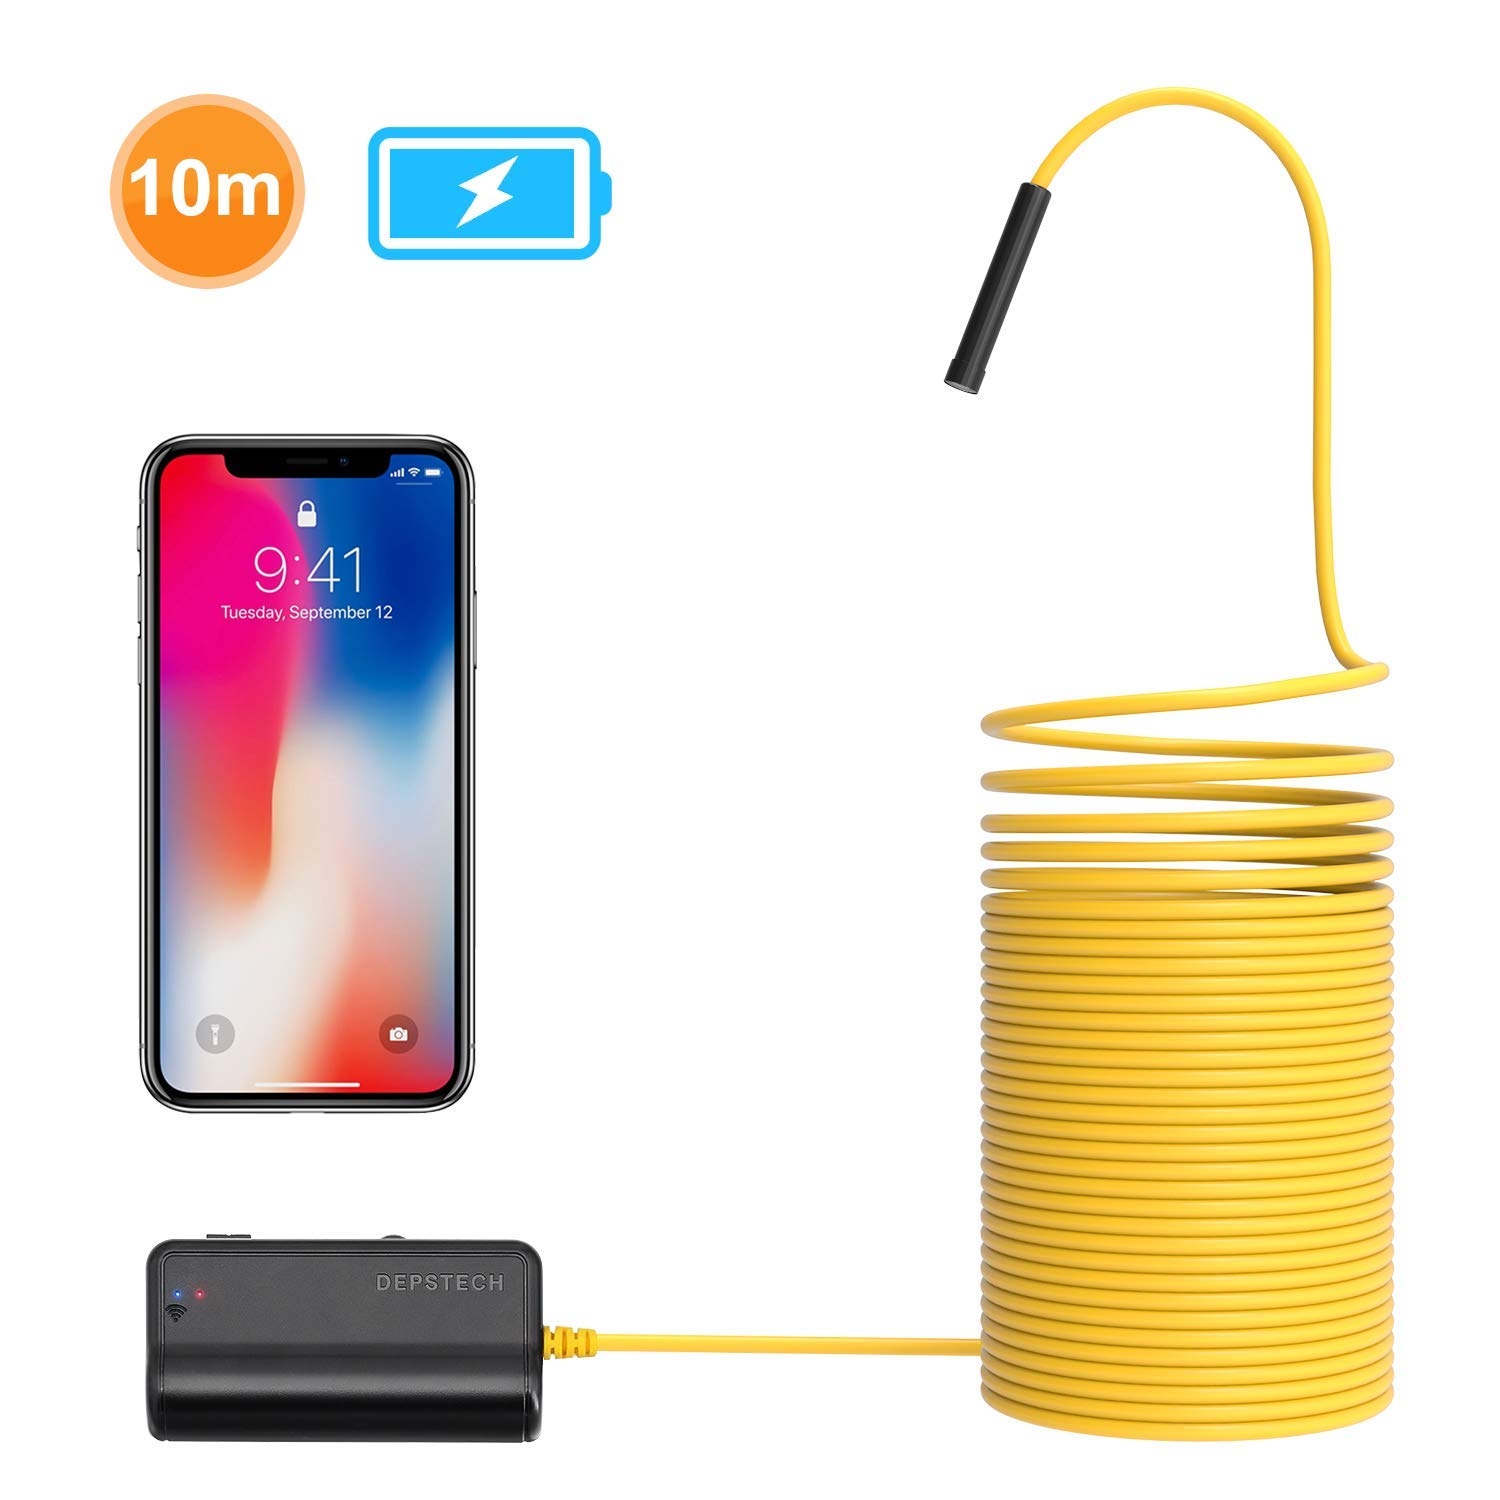 DEPSTECH 1200P Semi-Rigid Wireless Endoscope, 2.0 MP HD WiFi Borescope Inspection Camera,16 inch Focal Distance & 2200mAh Battery Snake Camera for Android & iOS Smartphone Tablet-33ft by DEPSTECH